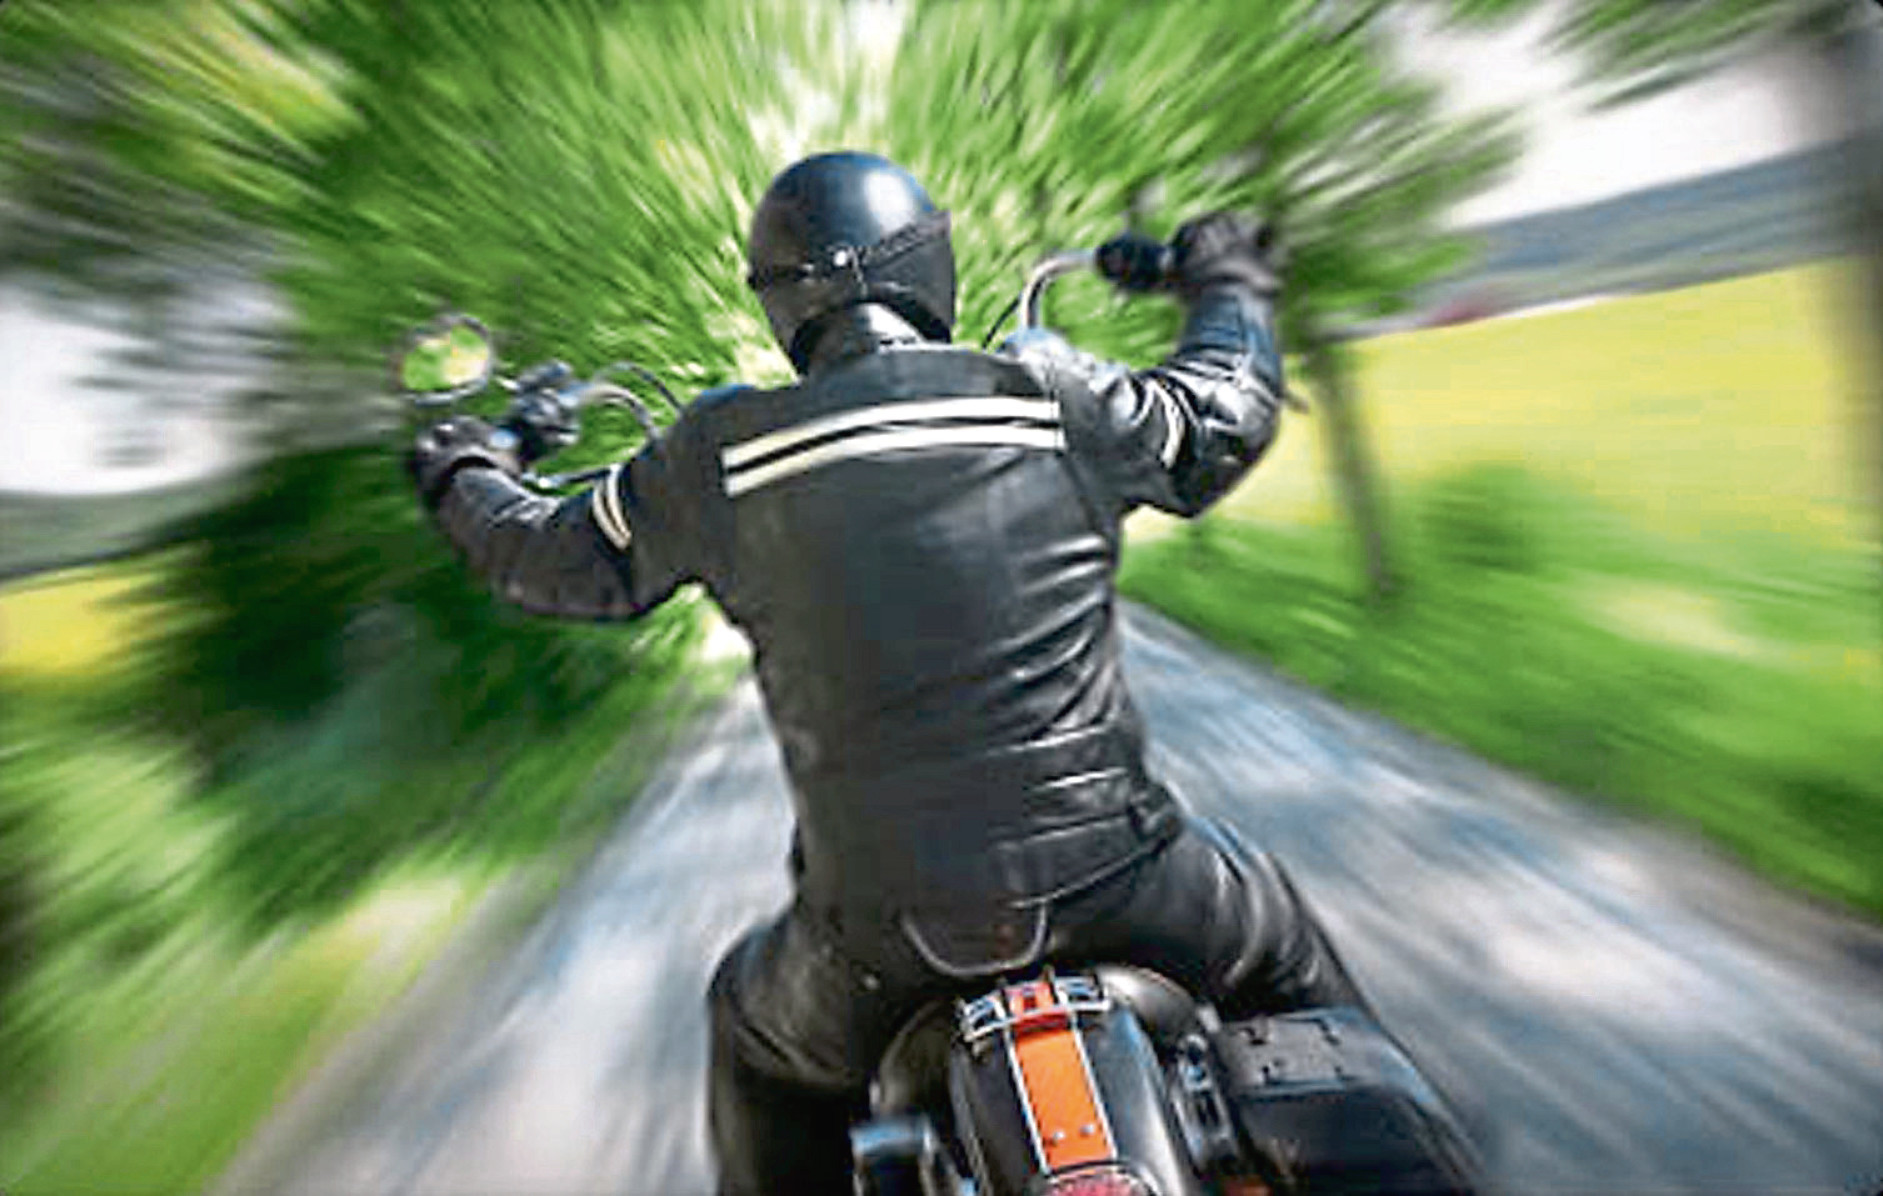 Bikers have been asked for their views